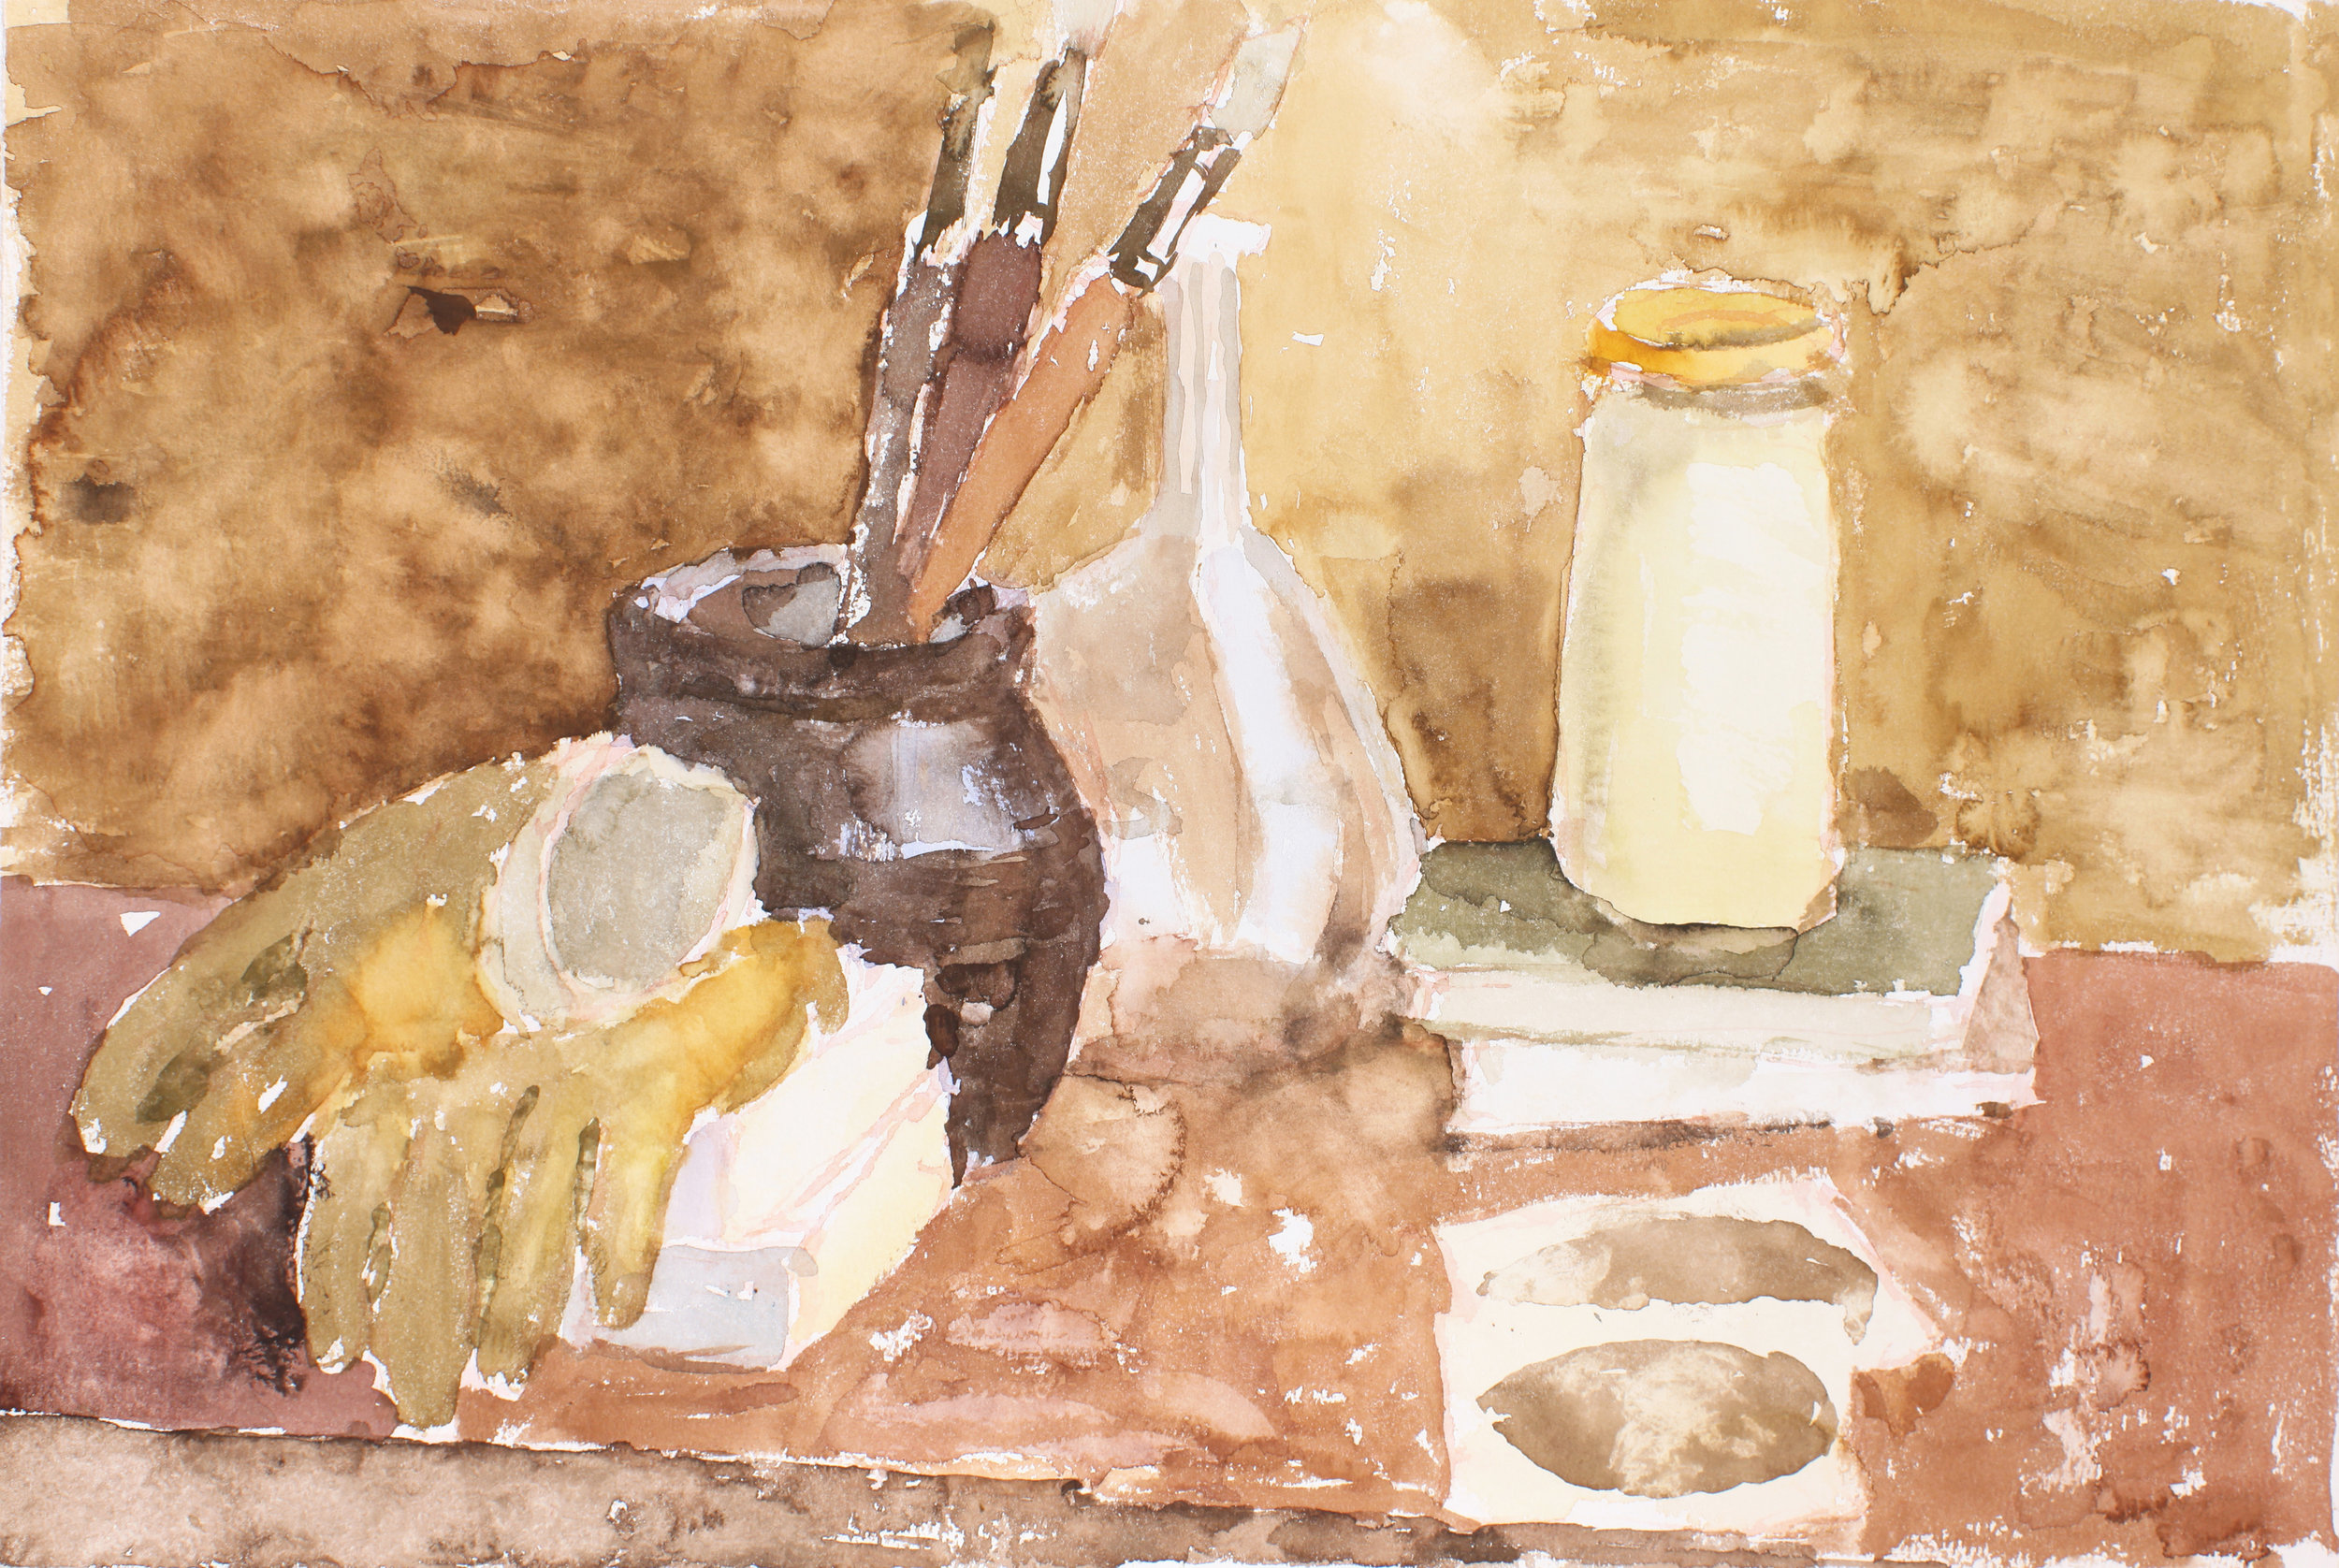 1997_Still_life_with_Gloves_and_Brushes_watercolour_on_paper_13x20in_WPF630.jpg